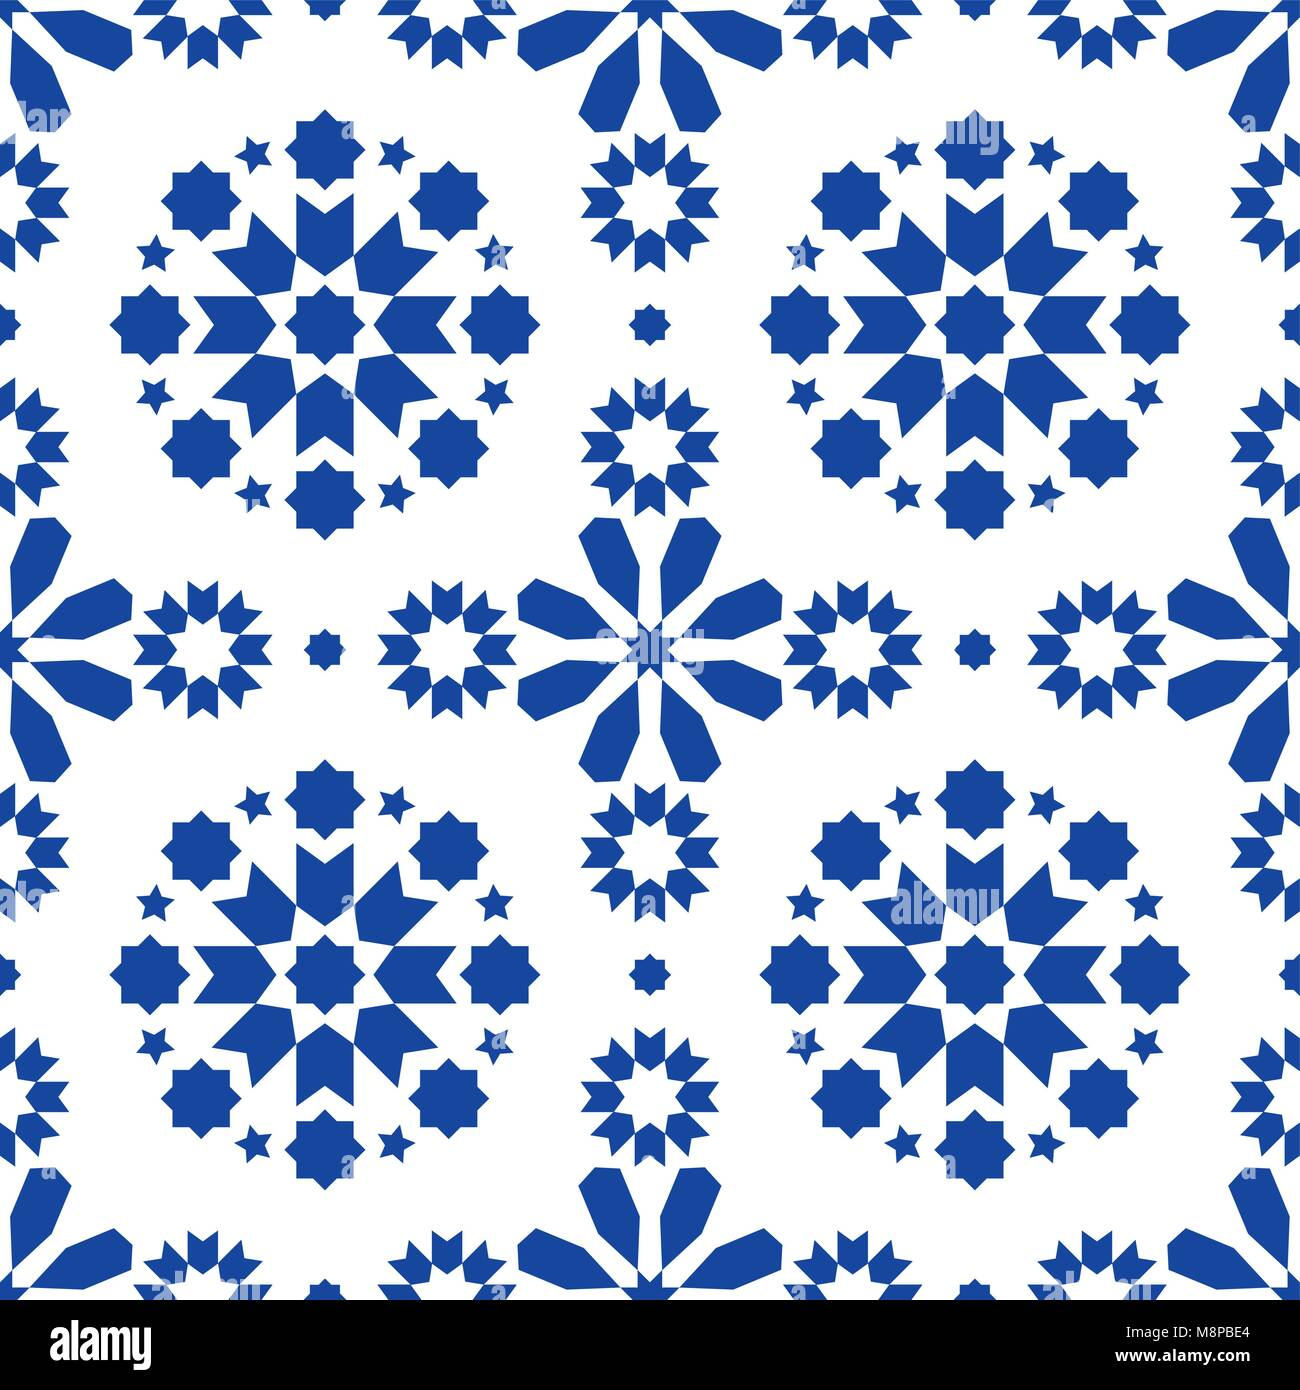 Geometric seamless pattern Azulejos tiles, Portuguese blue tile design, seamless abstract background - Stock Vector